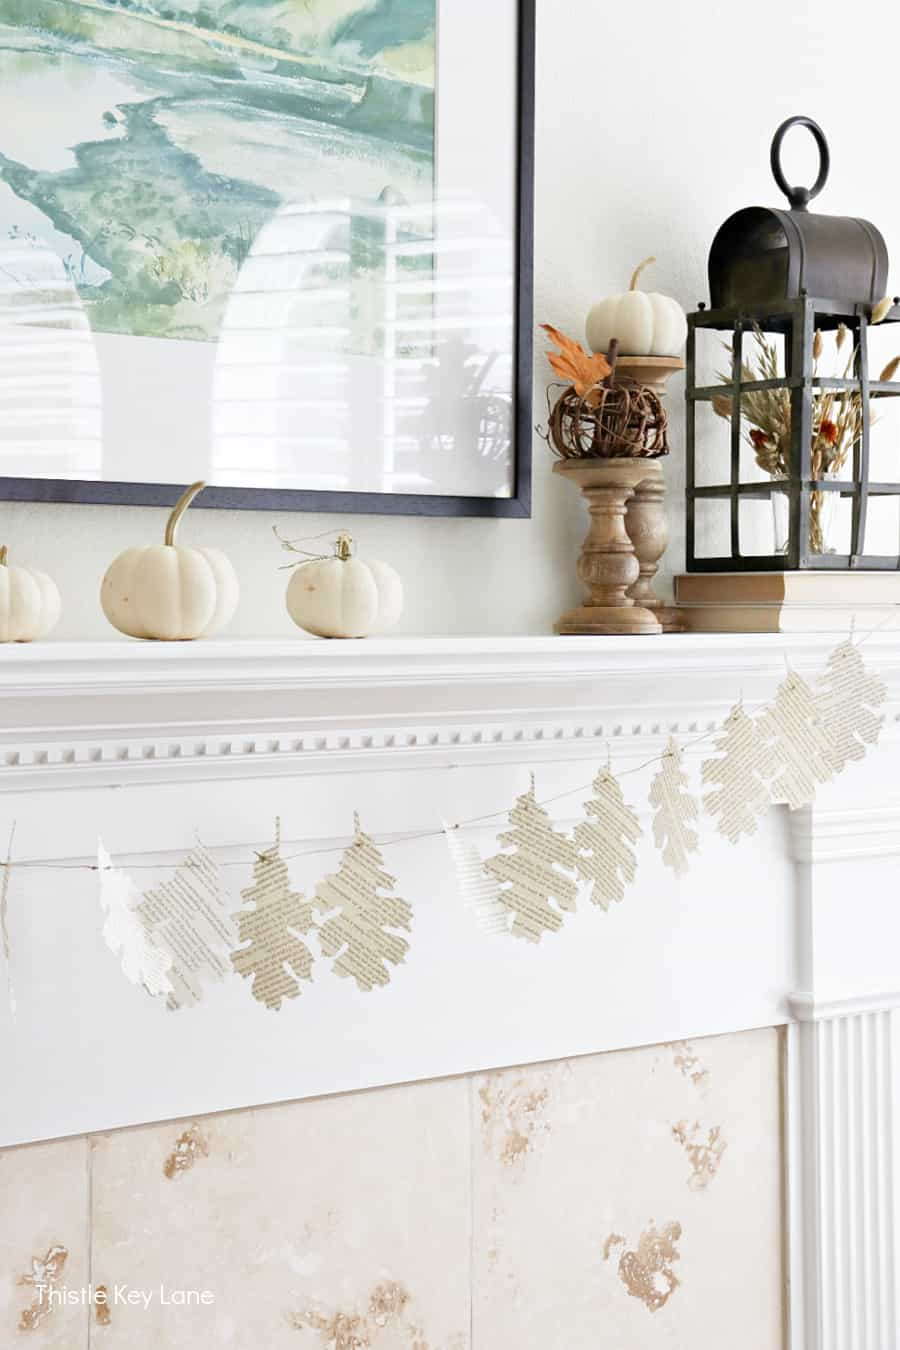 Leaf garland and white pumpkins on a mantel.